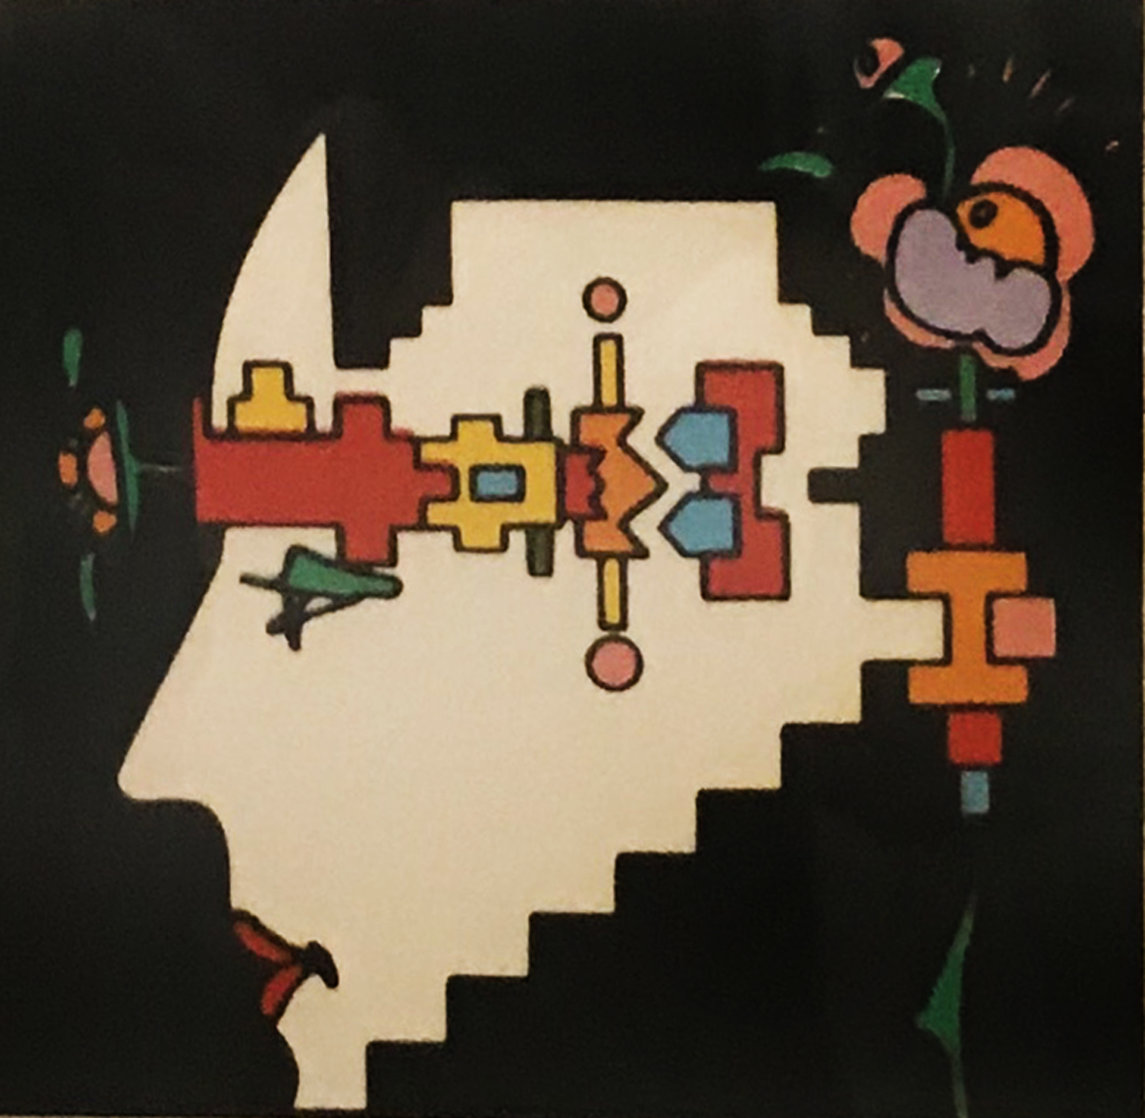 Geometric Man 1973 (Vintage) Limited Edition Print by Peter Max